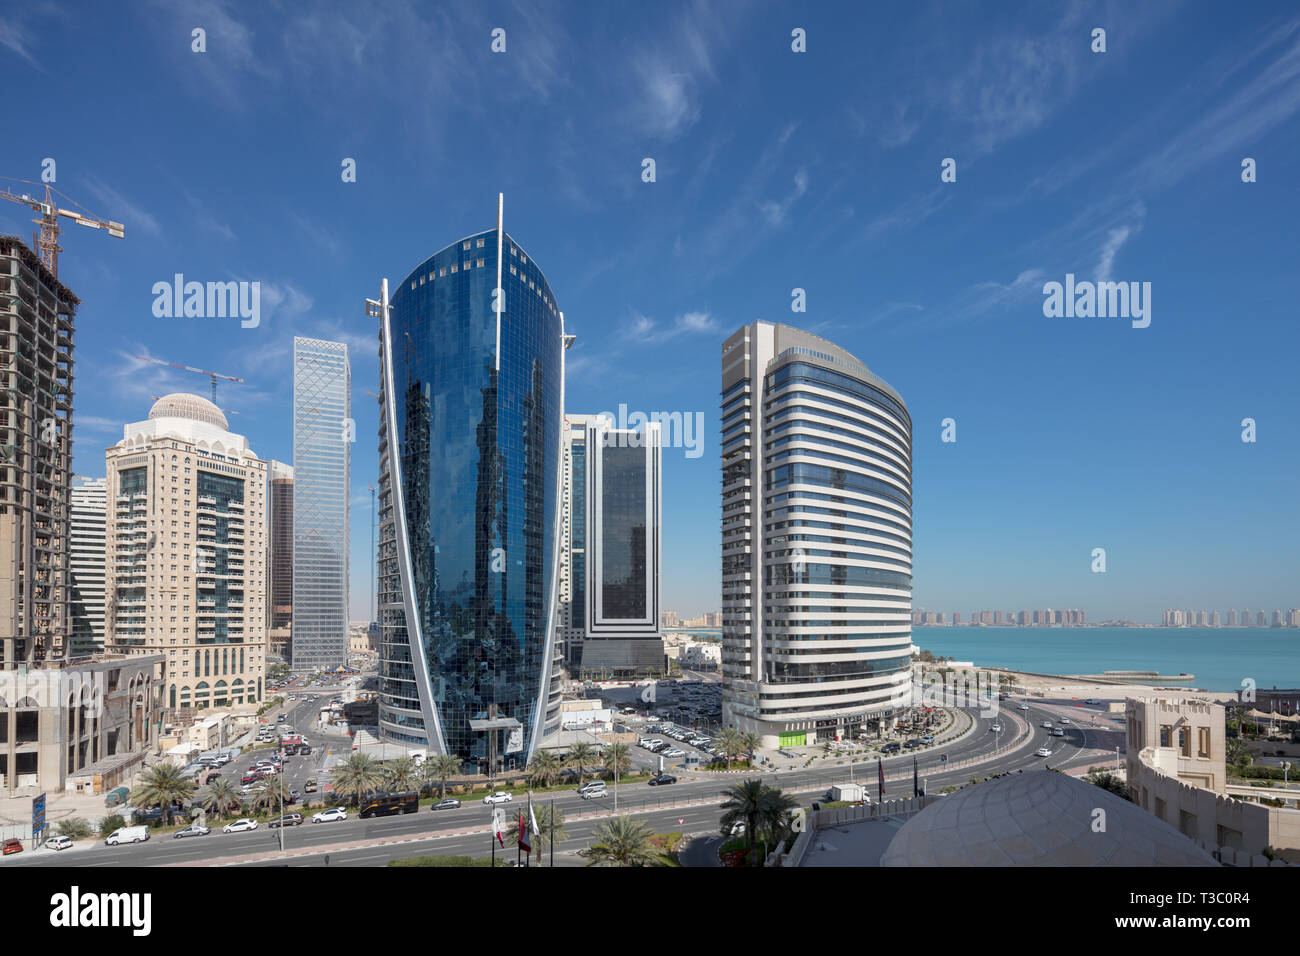 Movenpick hotel and  neighboring buildings, West Bay, Doha, Qatar - Stock Image